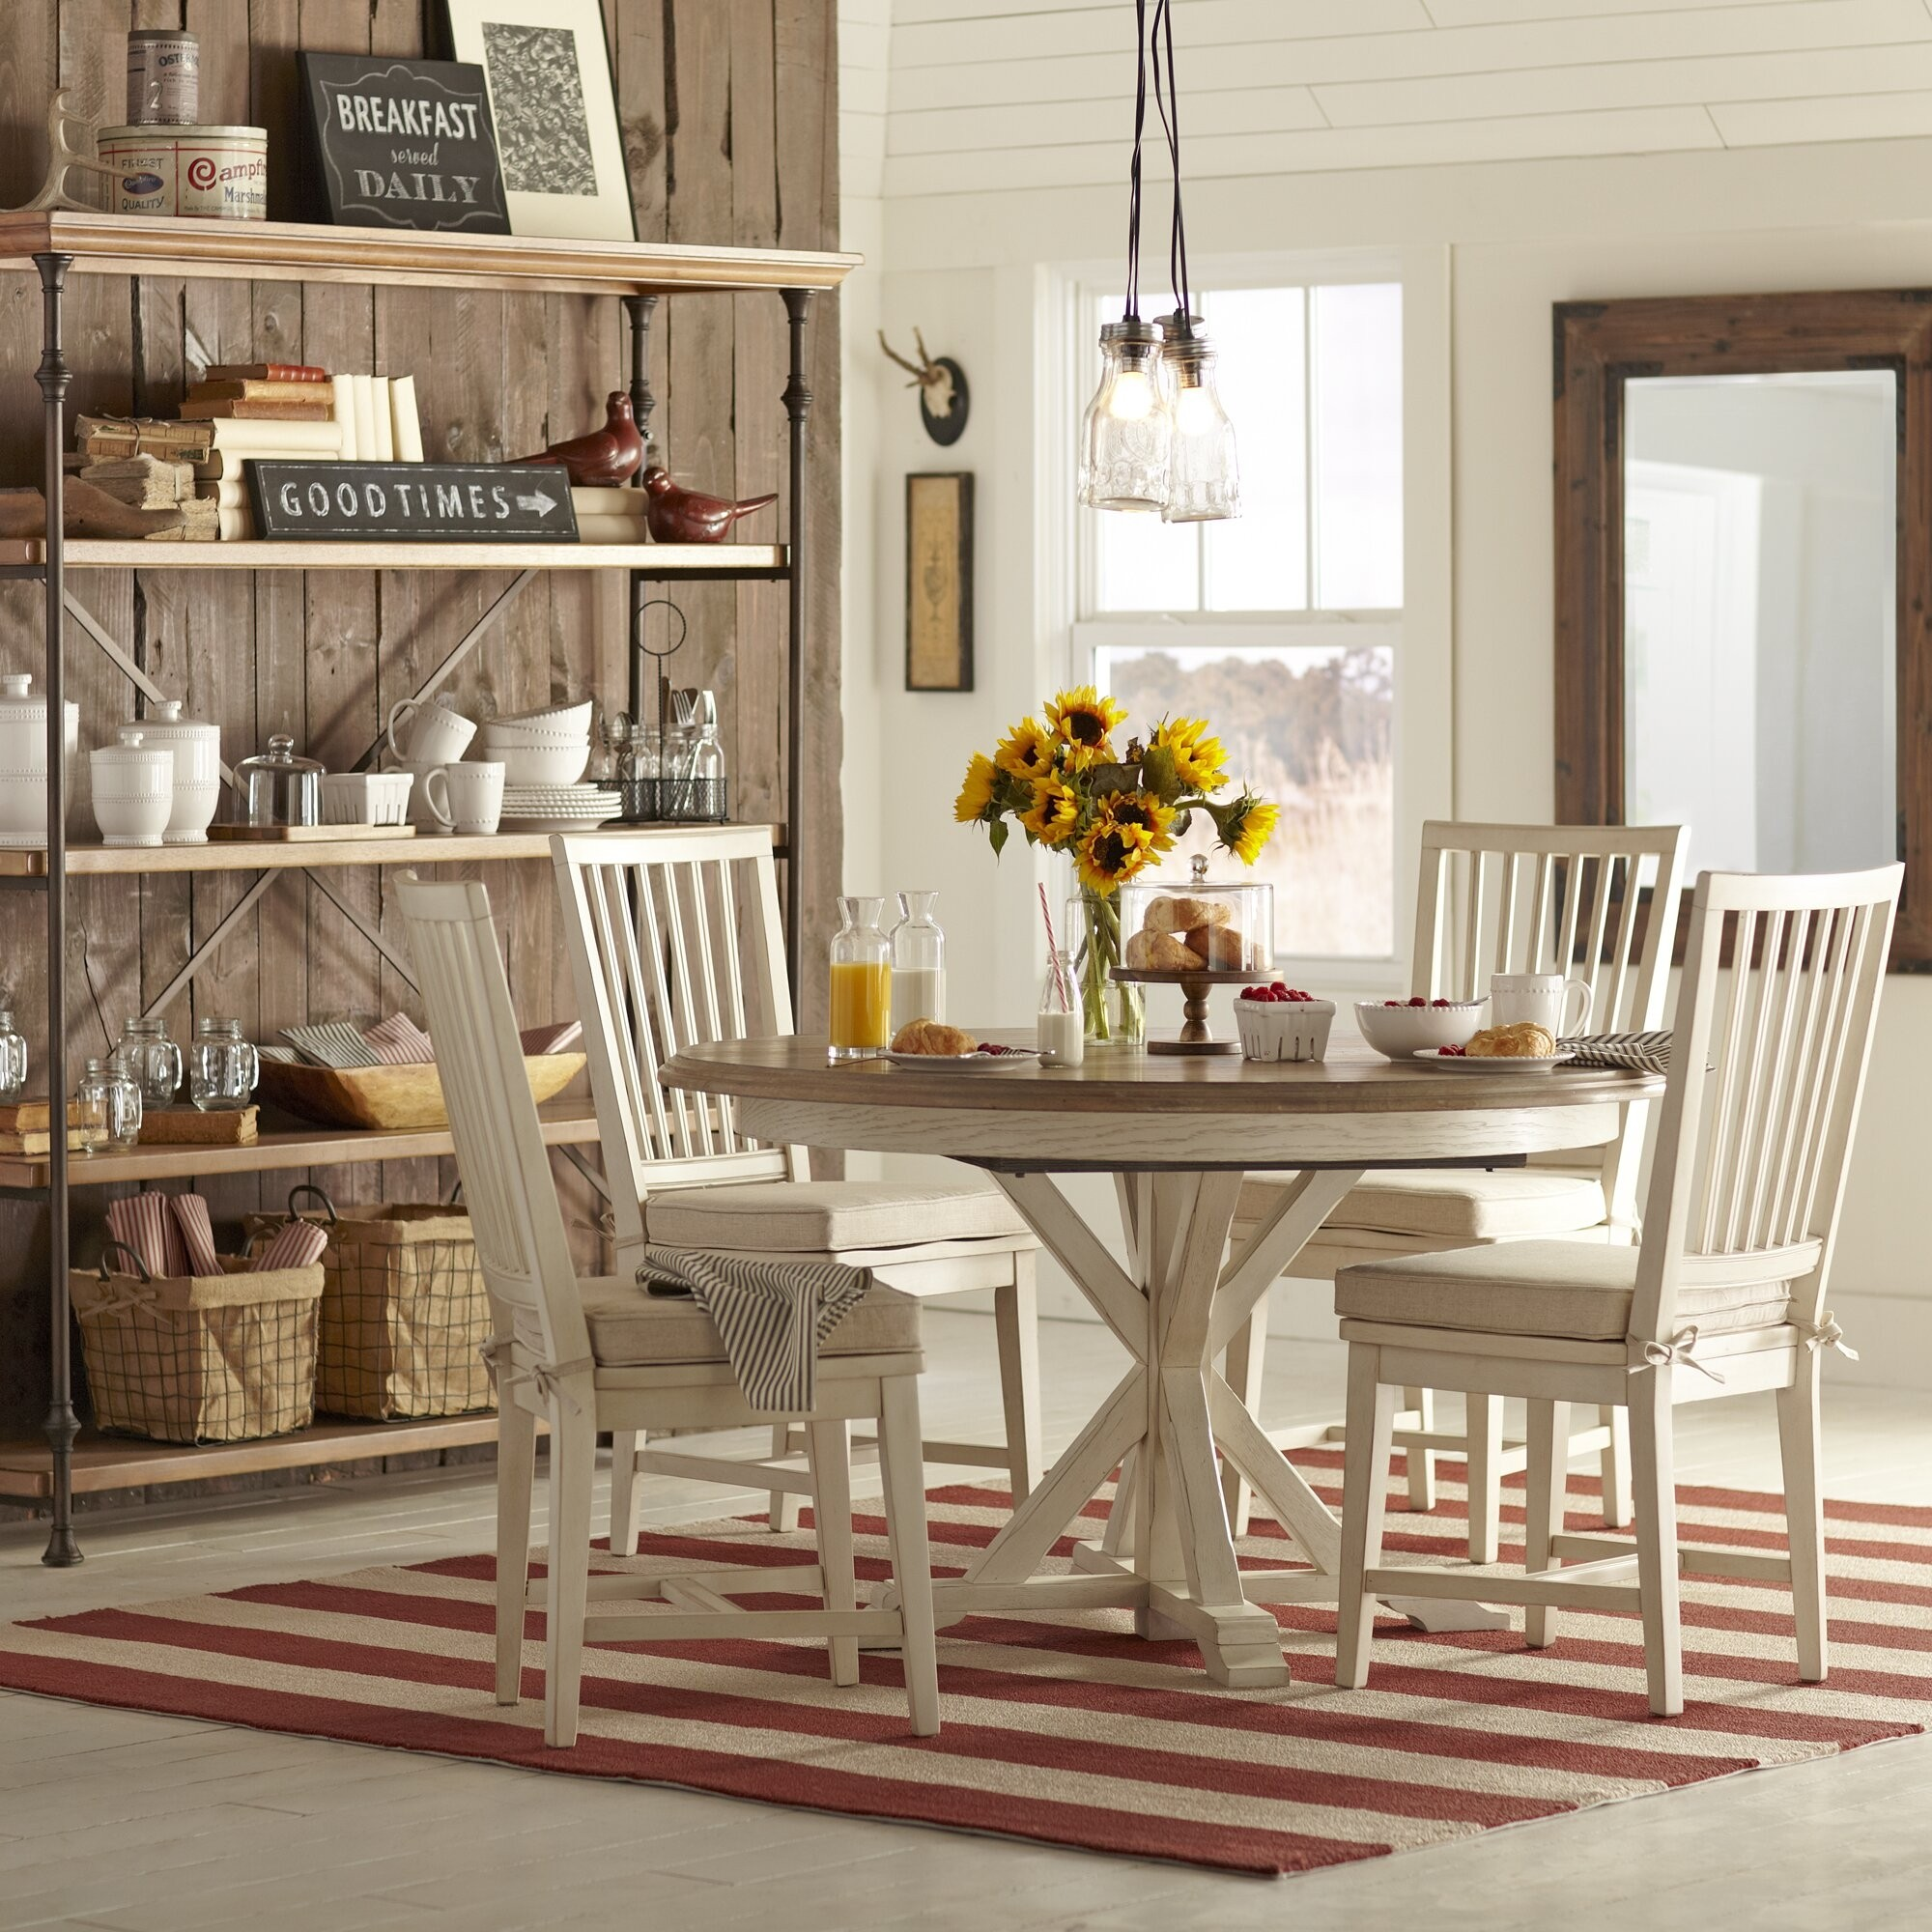 Cottage dining room tables Wood Country Kitchen Rustic Cabin Oak Wood Cottage Dining Table Foter Round Dining Room Table Seats 12 Ideas On Foter